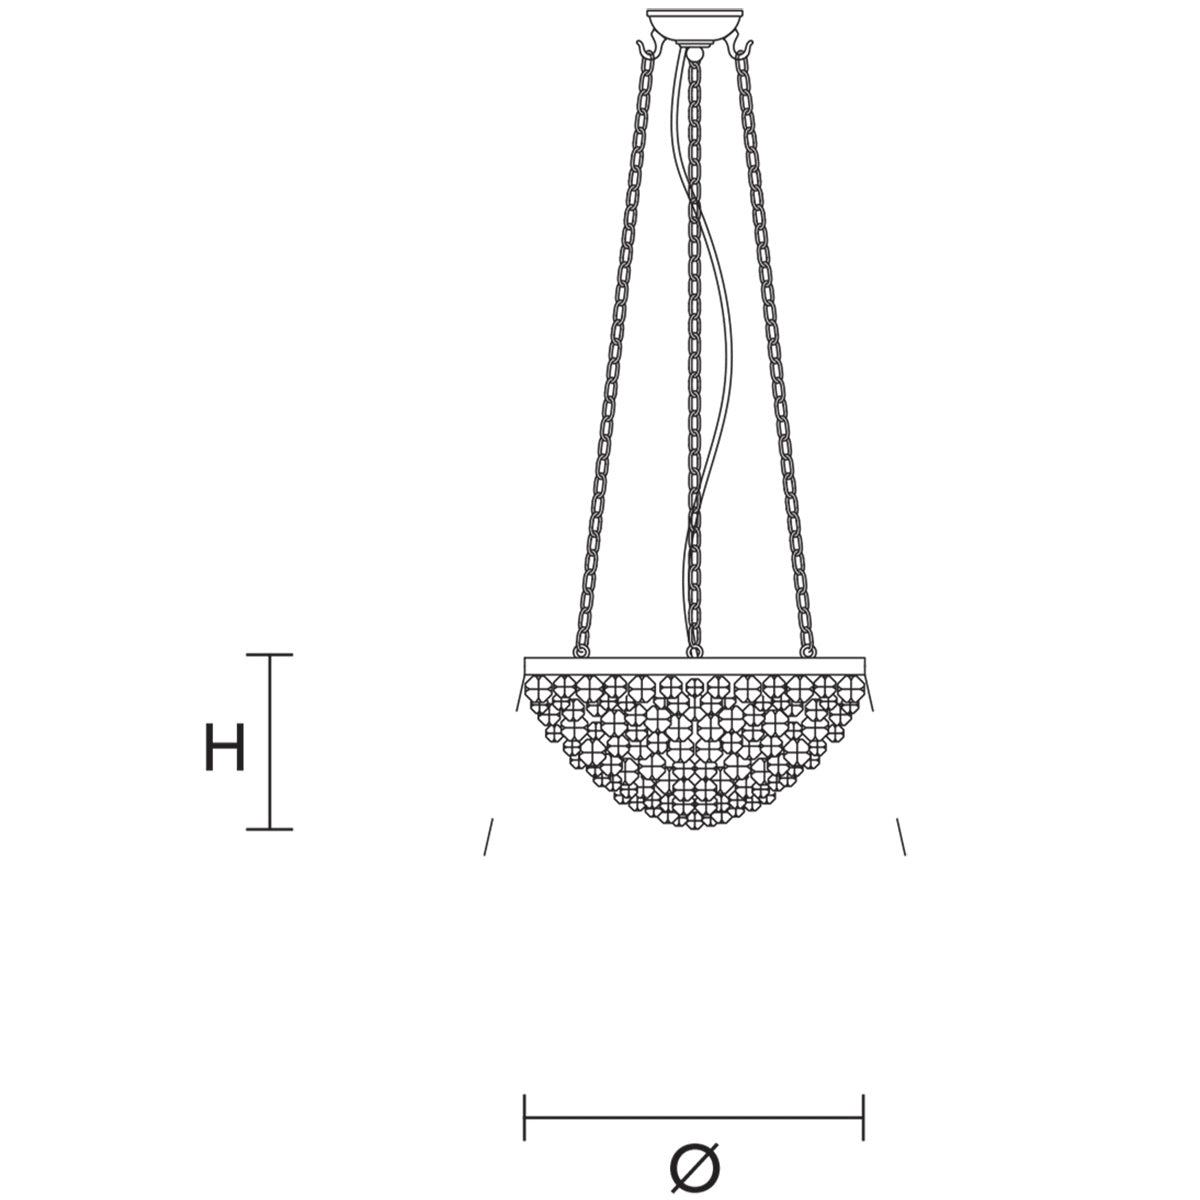 Rosemery 2 Suspension Lamp Specifications